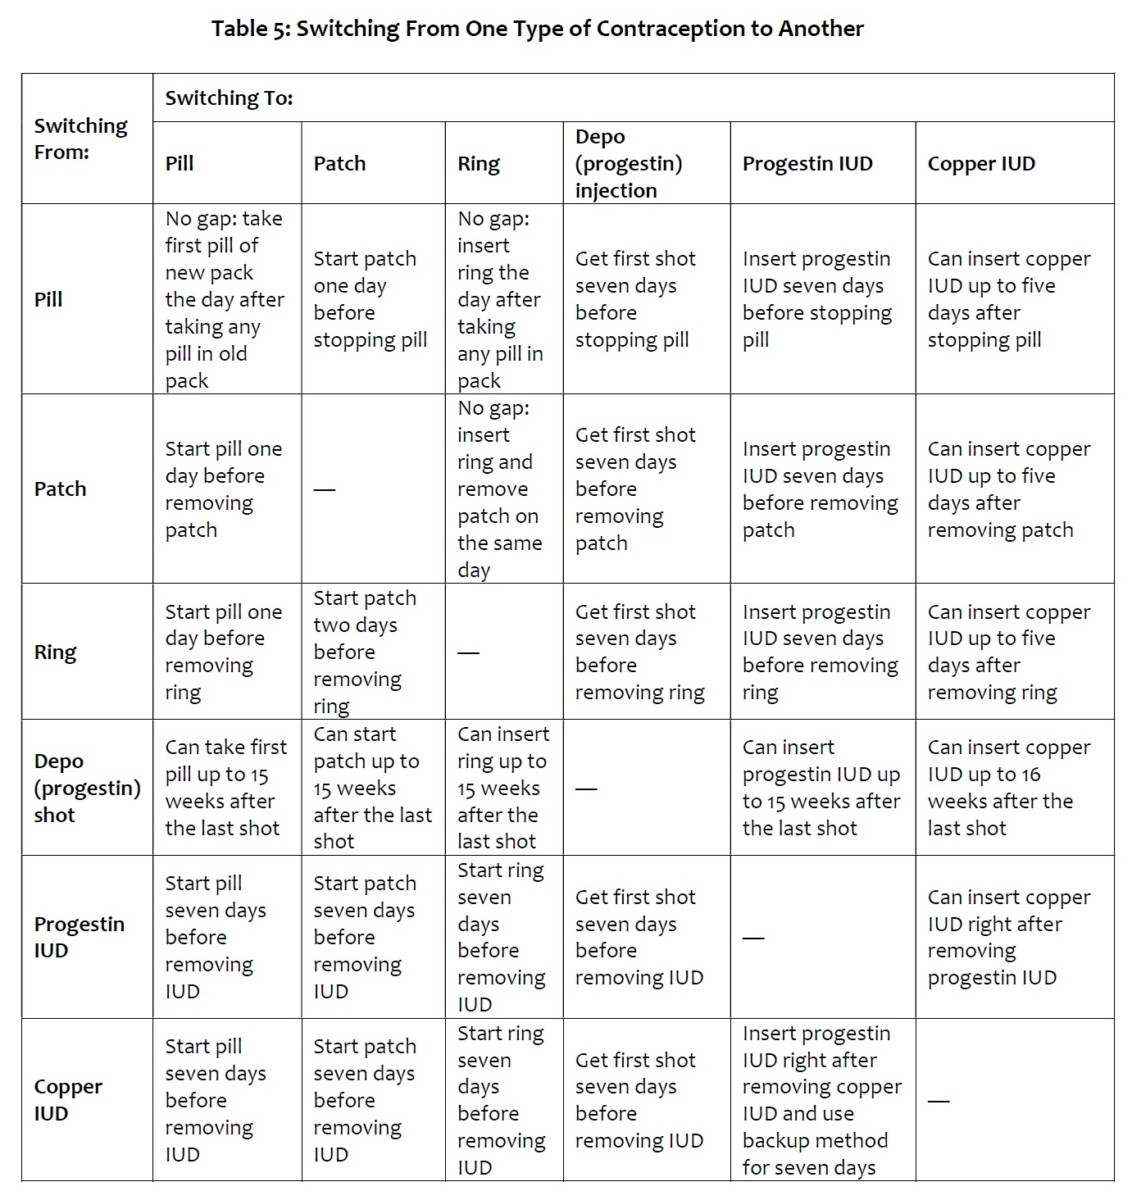 Table 5 - Switching From One Type of Contraception to Another